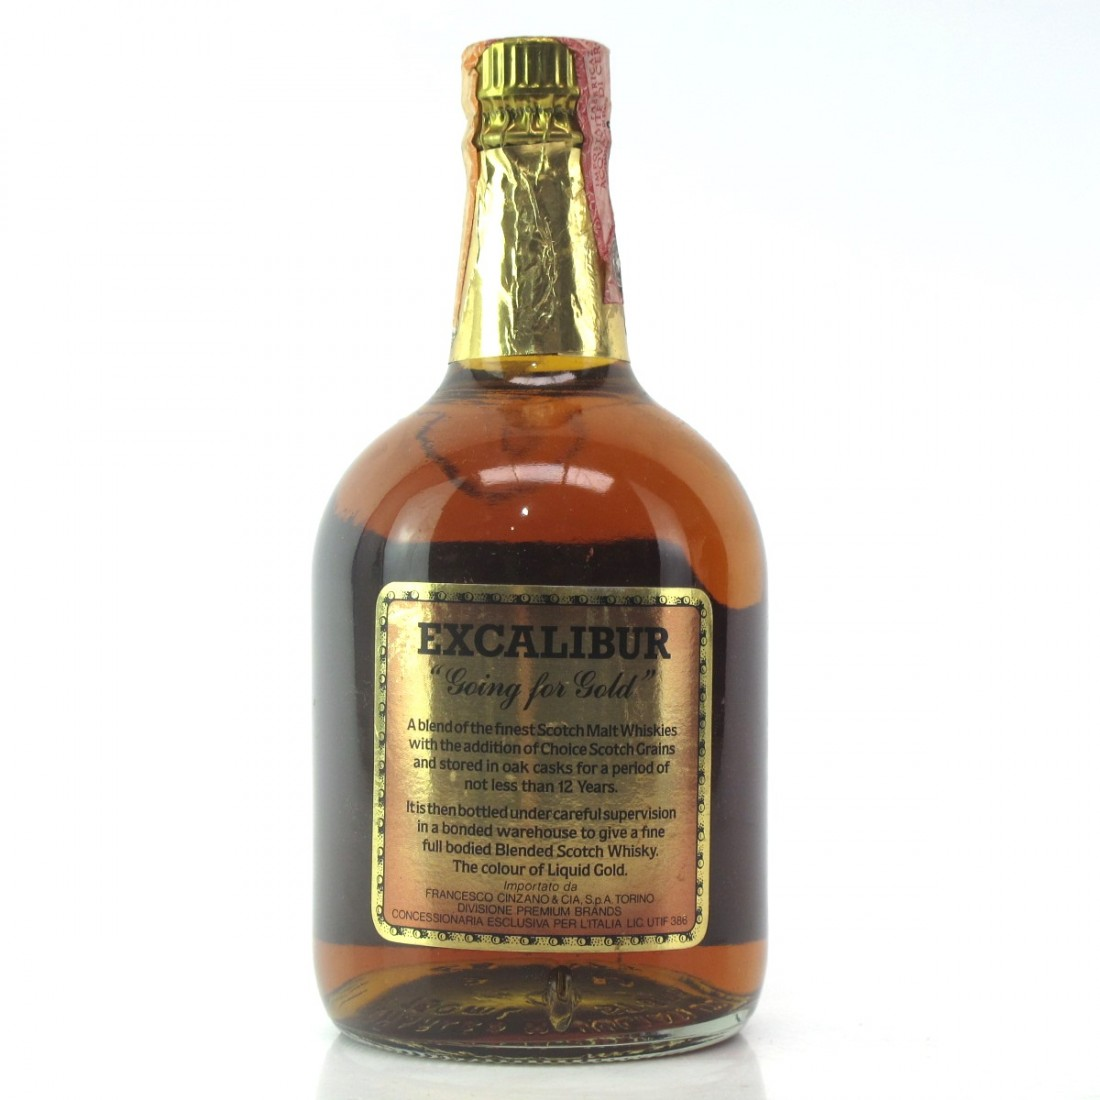 Excalibur Gold 12 Year Old 1980s